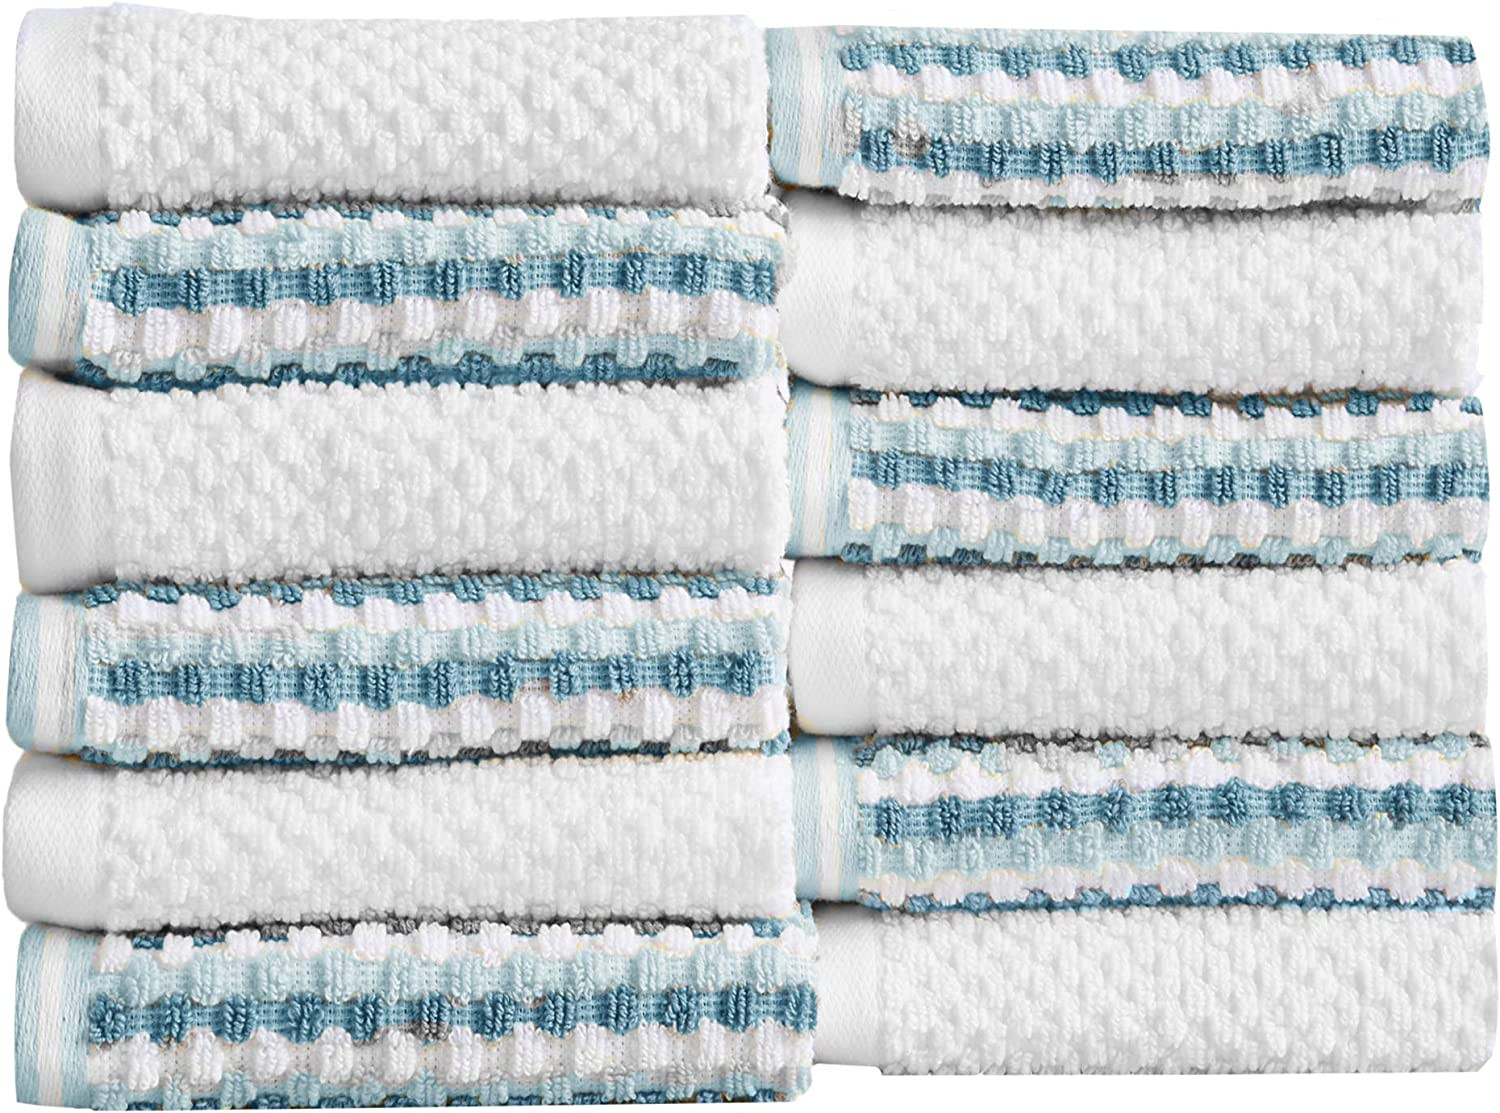 12-Piece Washcloth Set. 100% Cotton Multi-Striped Bathroom Towels. Quick Dry and Absorbent Towels. Set Includes 12 Washcloths. Milos Collection (12 Pack, Light Blue / Dark Blue)